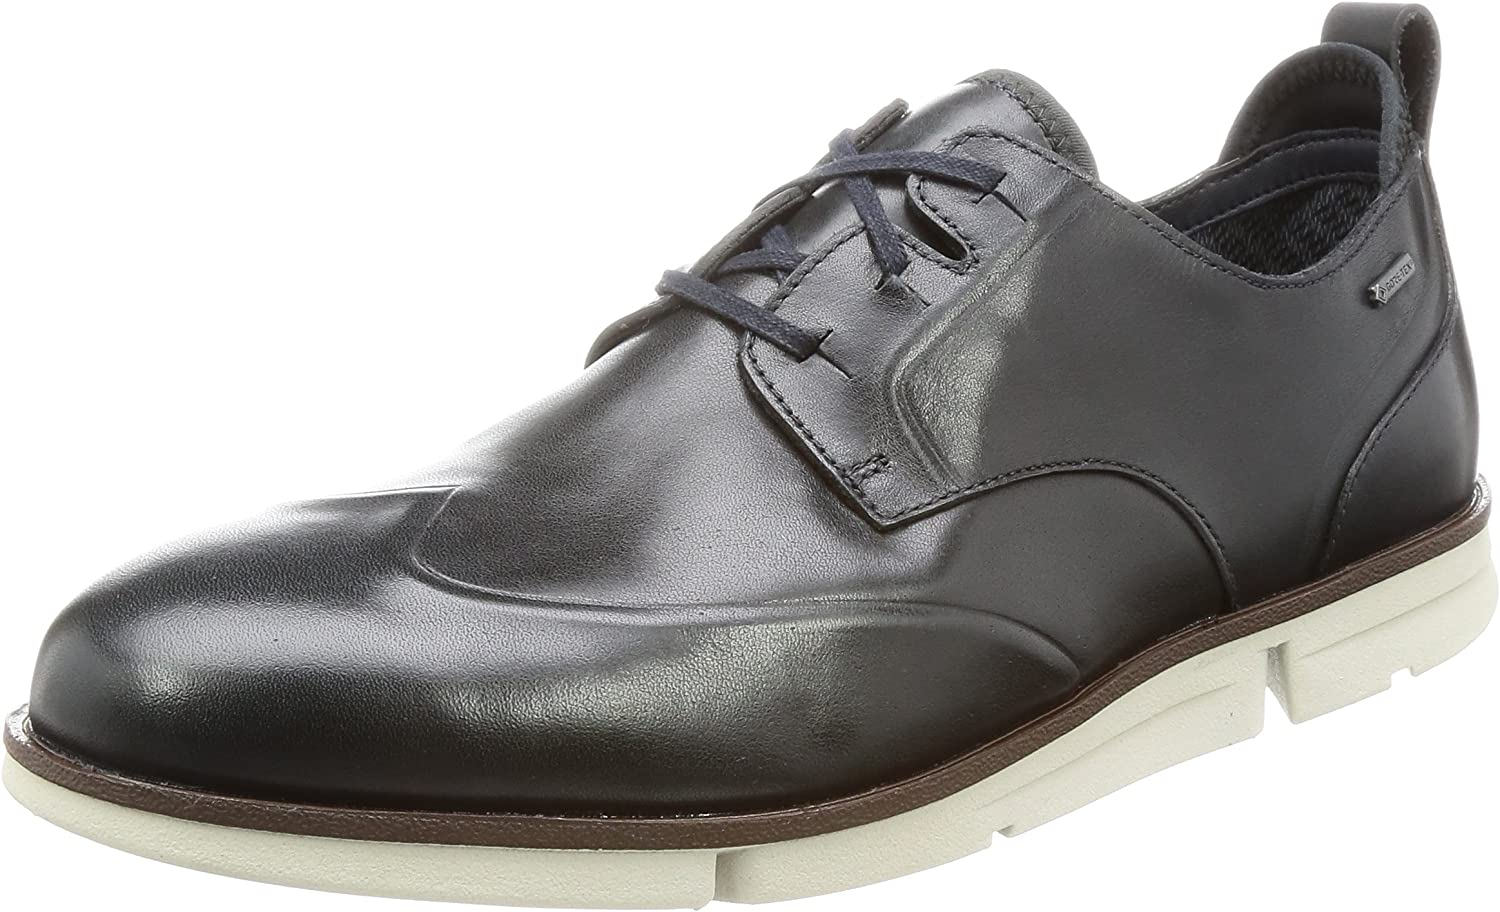 Clarks Trigen Wing GTX - Navy Leather Mens shoes